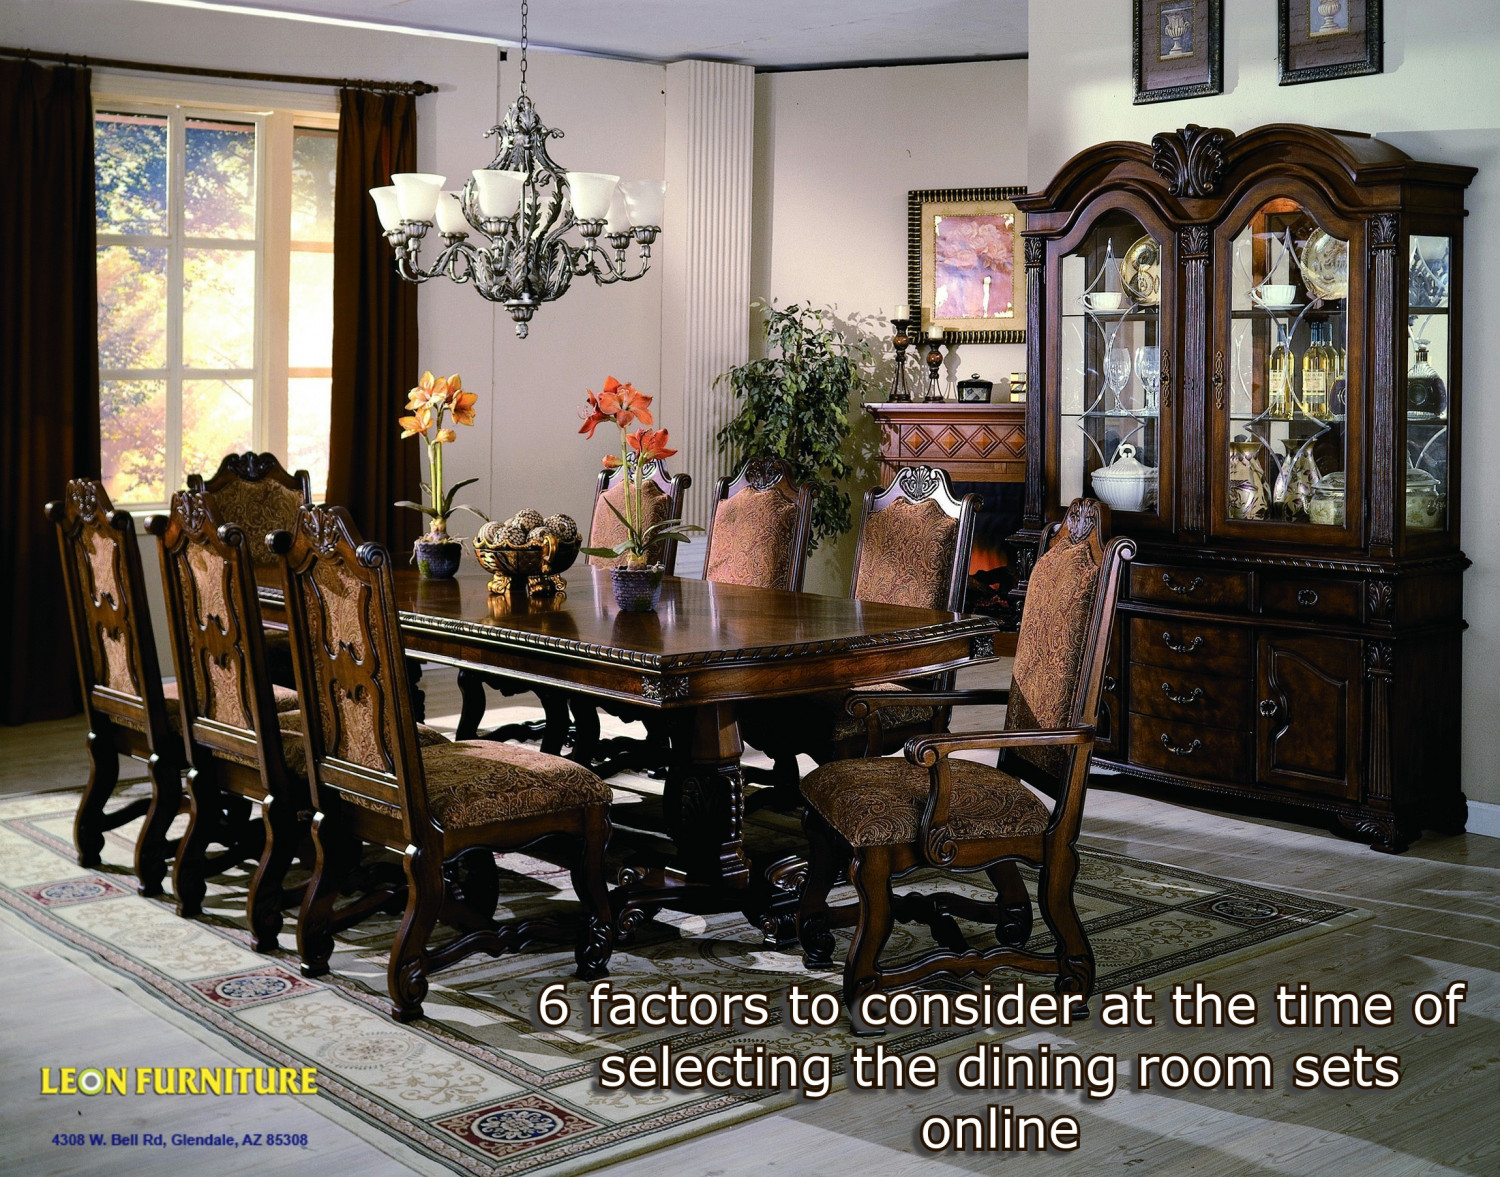 6 factors to consider at the time of selecting the dining room sets online Infographic